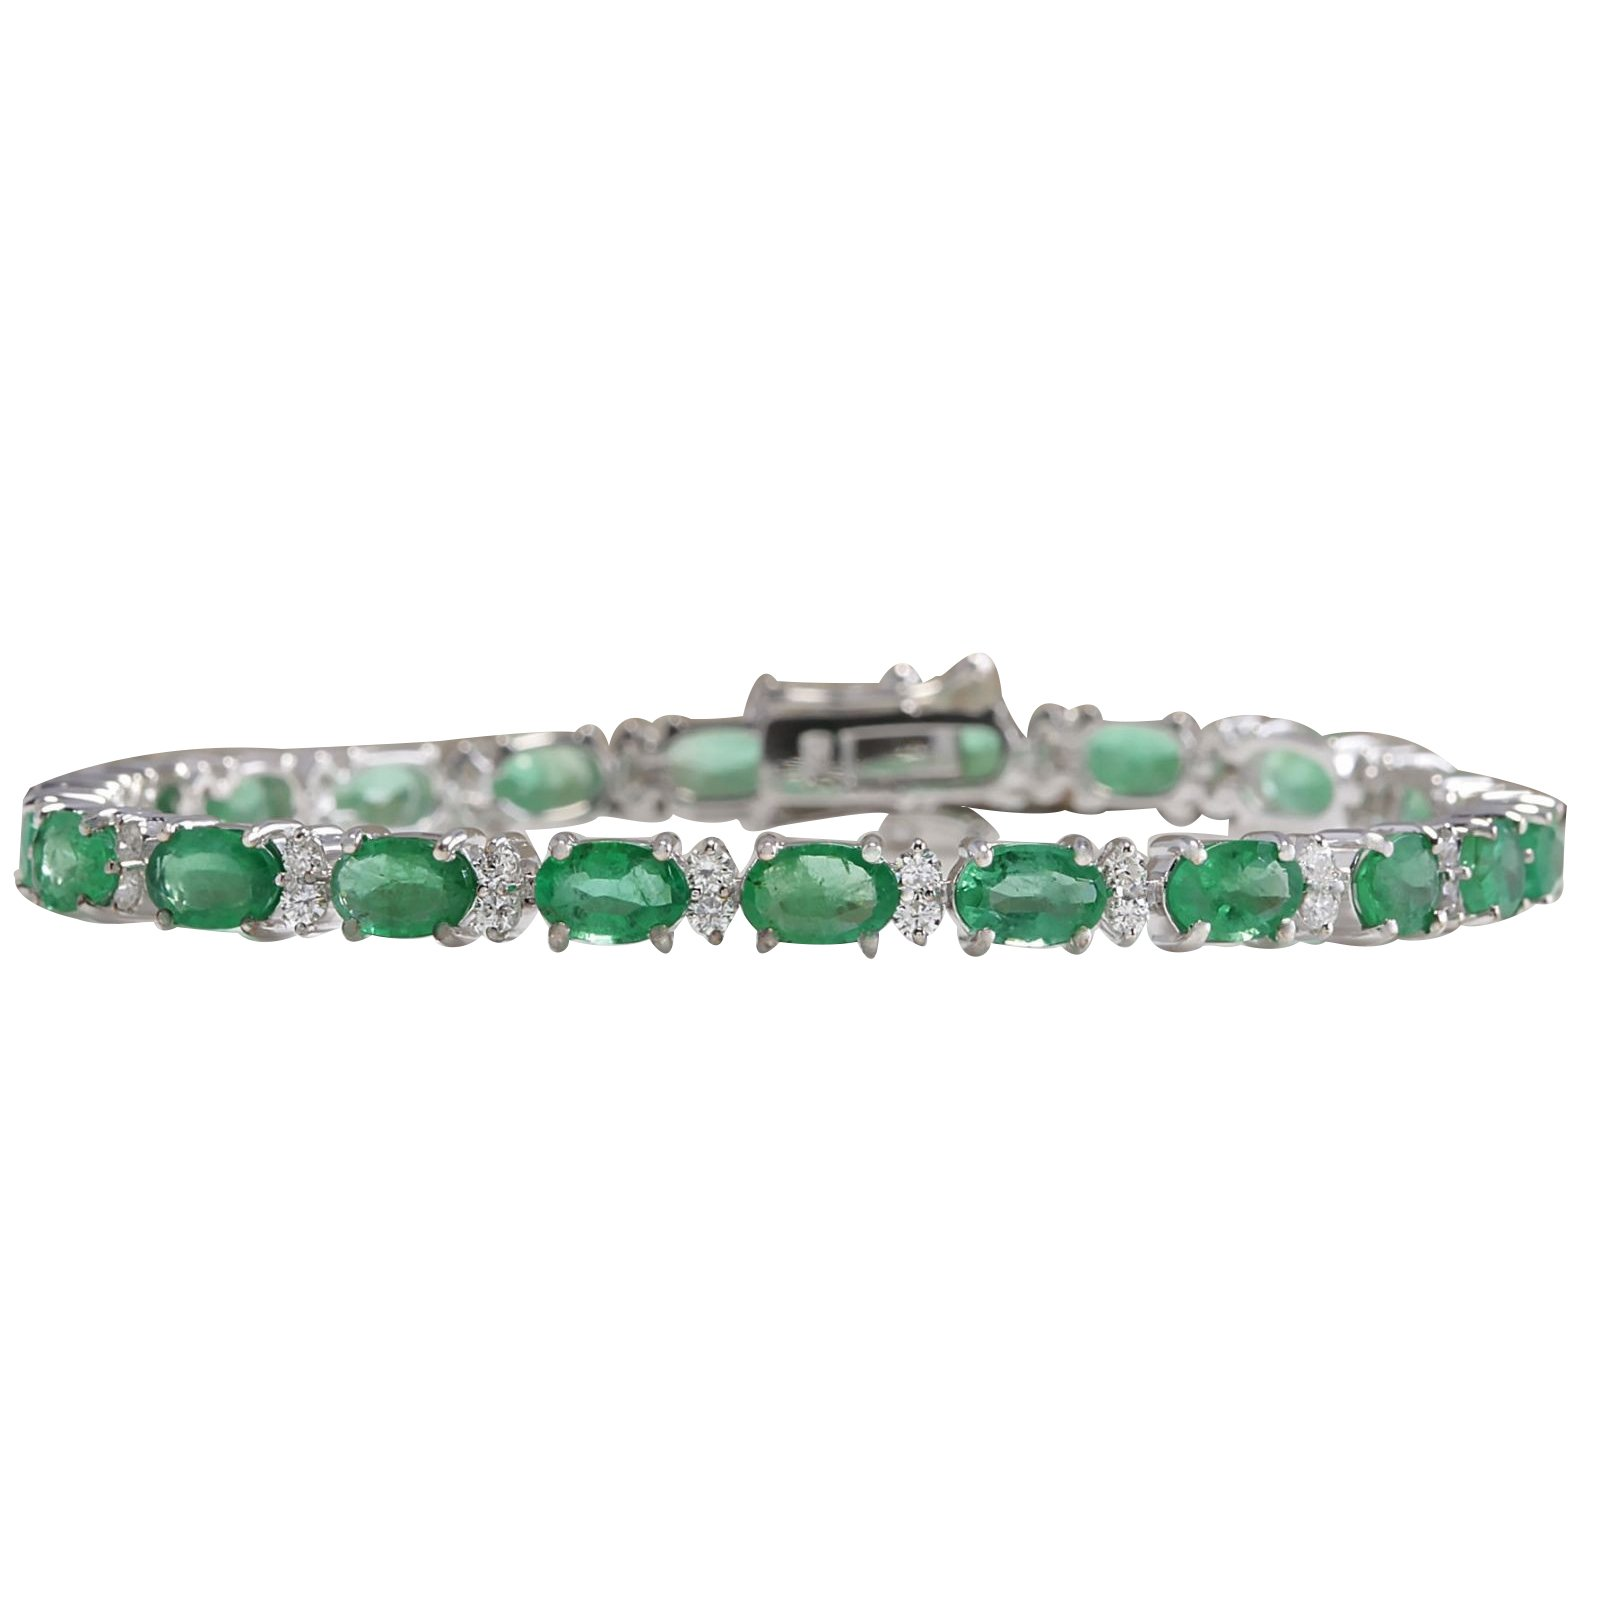 10.17 Carat Natural Green Emerald and Diamond 14K White Gold Luxury Tennis Bracelet for Women